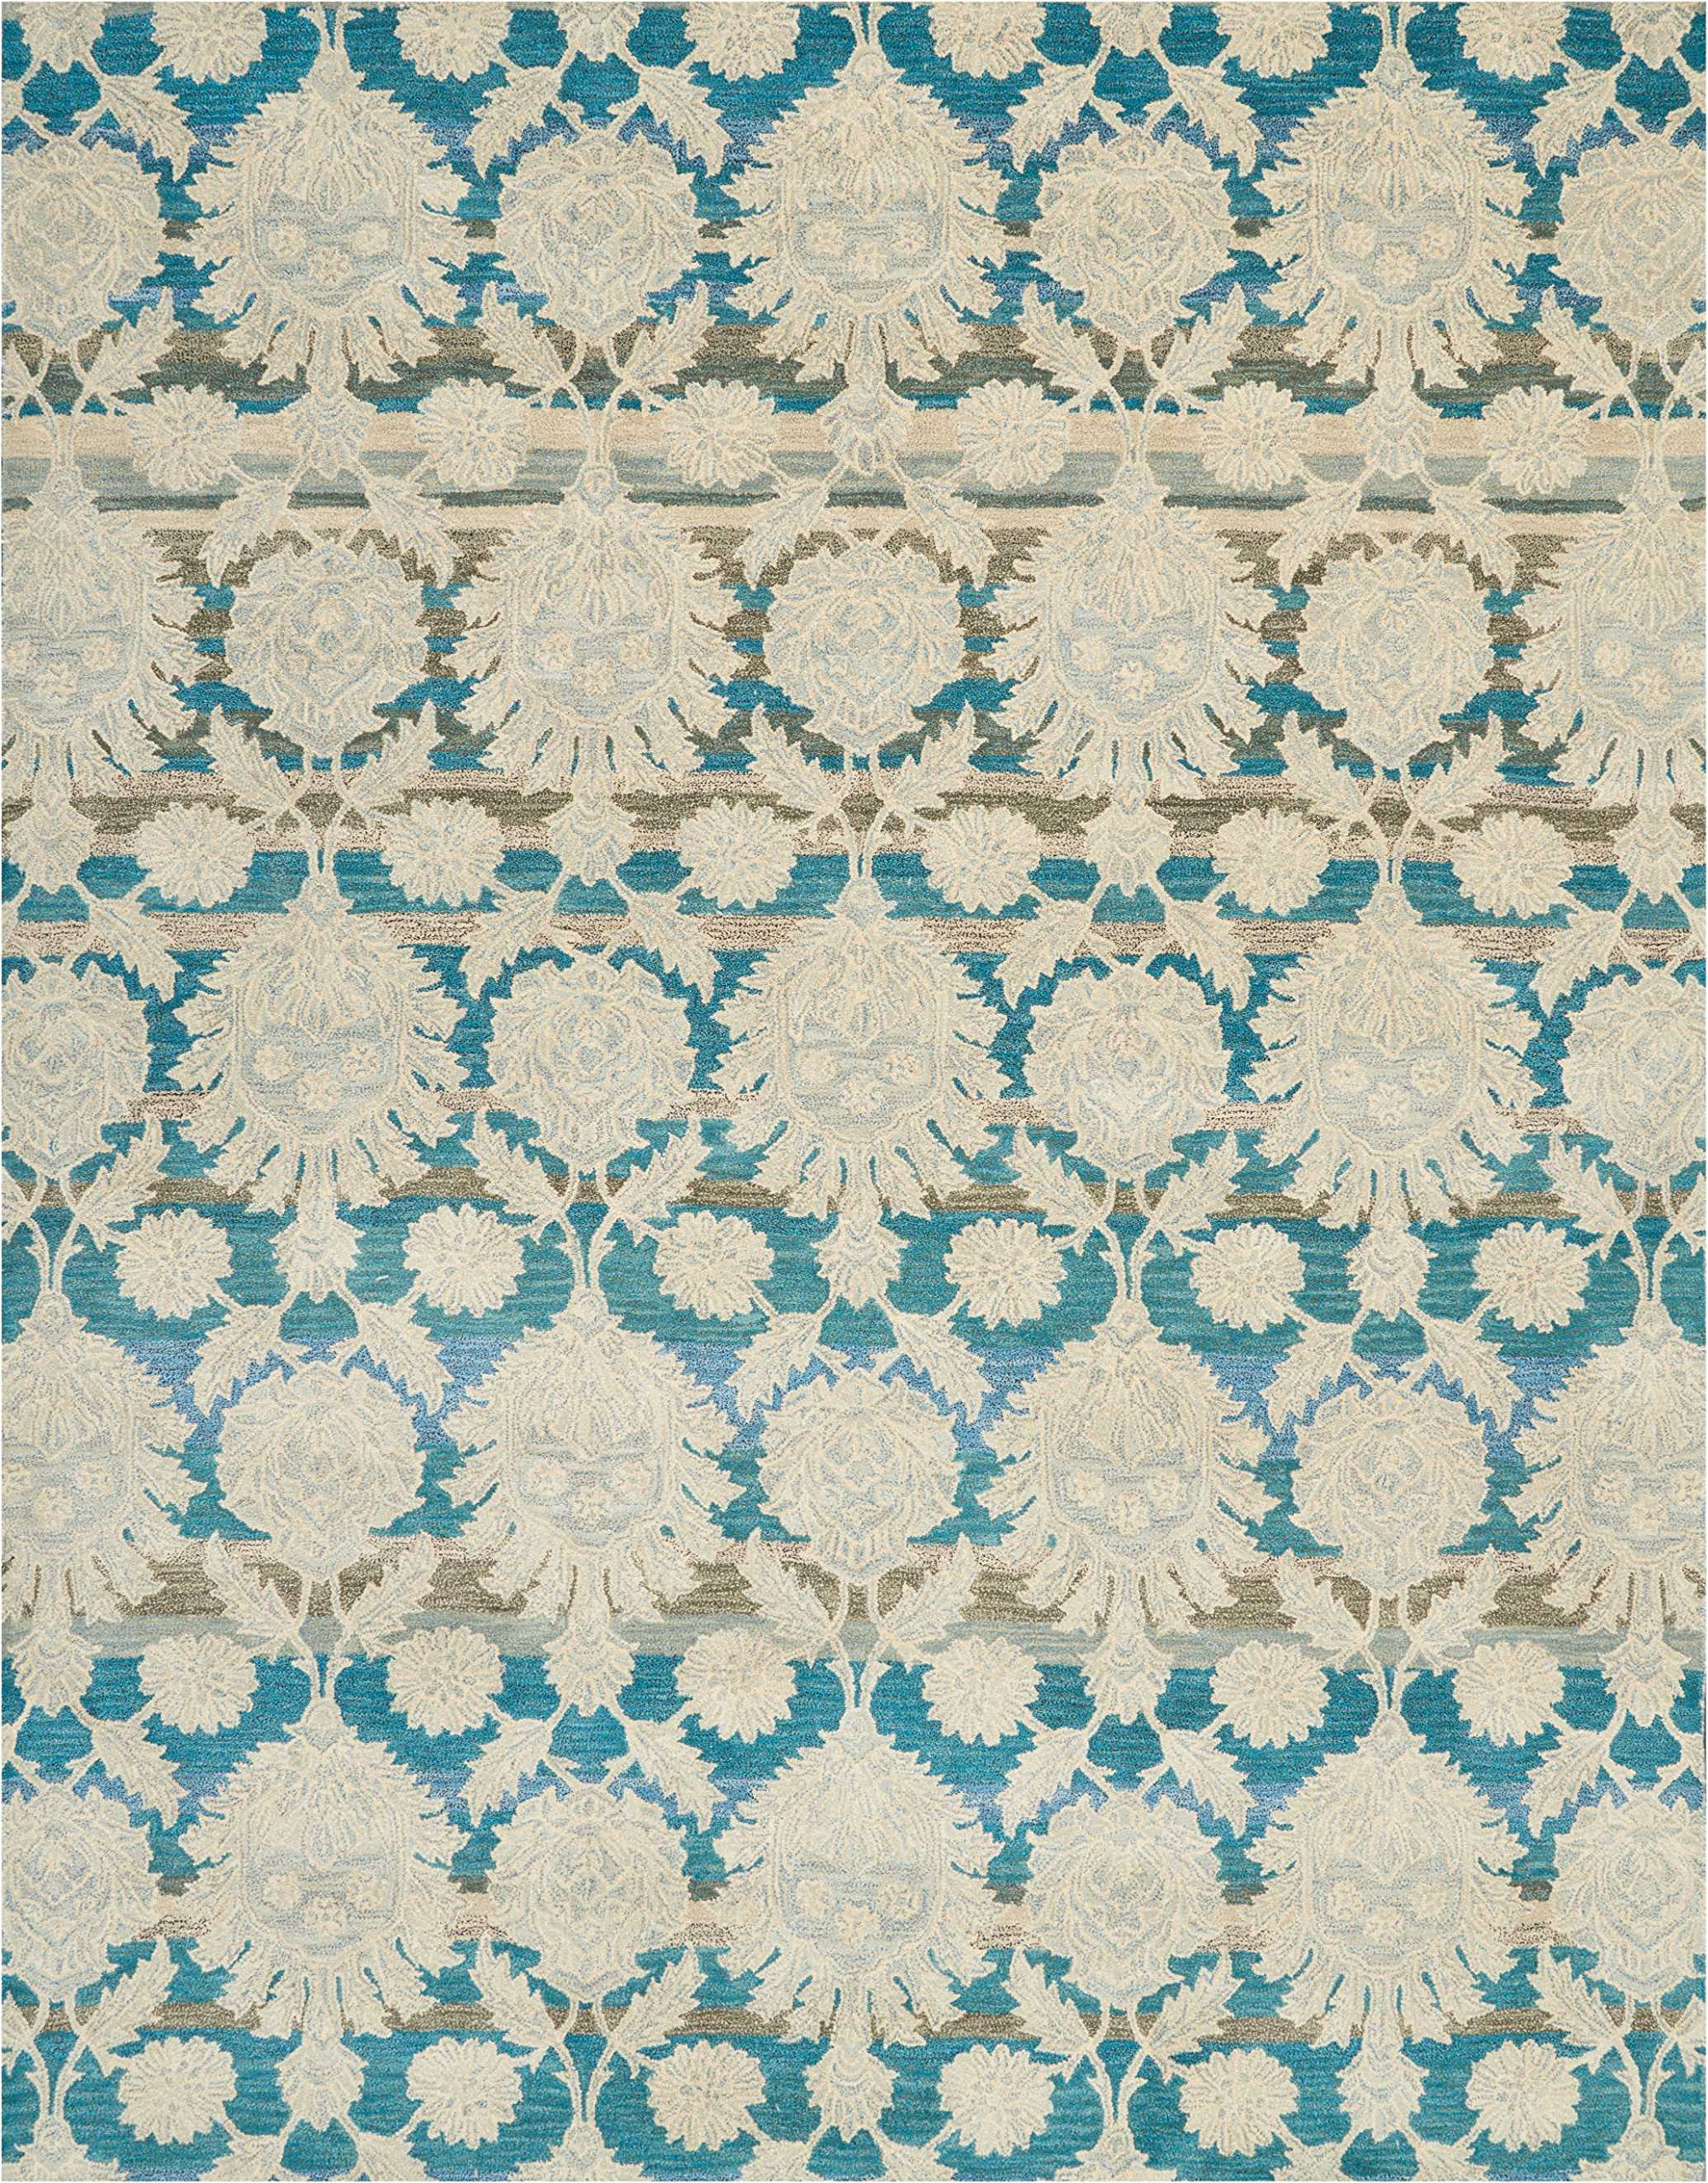 Nourison IH91 India House Area Rug, 8'X10'6'', IVORY/TEAL